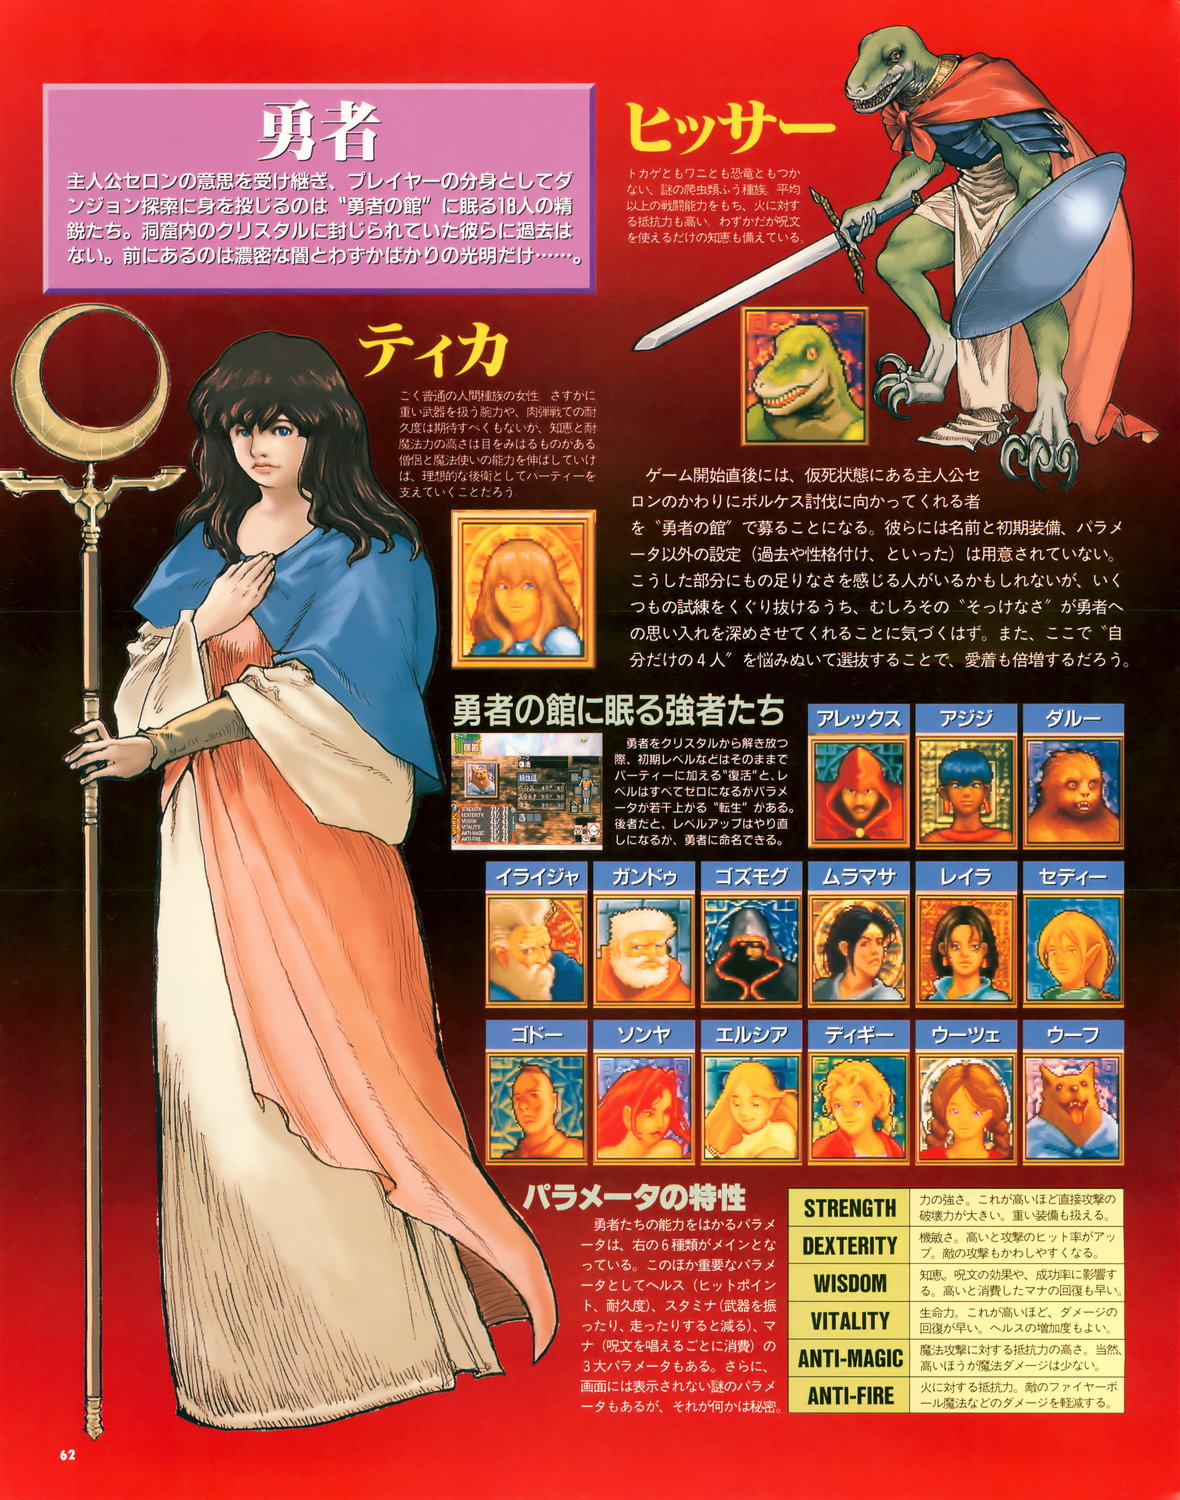 Dungeon Master Nexus Preview published in Japanese magazine 'Sega Saturn Magazine', Vol 7 13 March 1998, Page 62